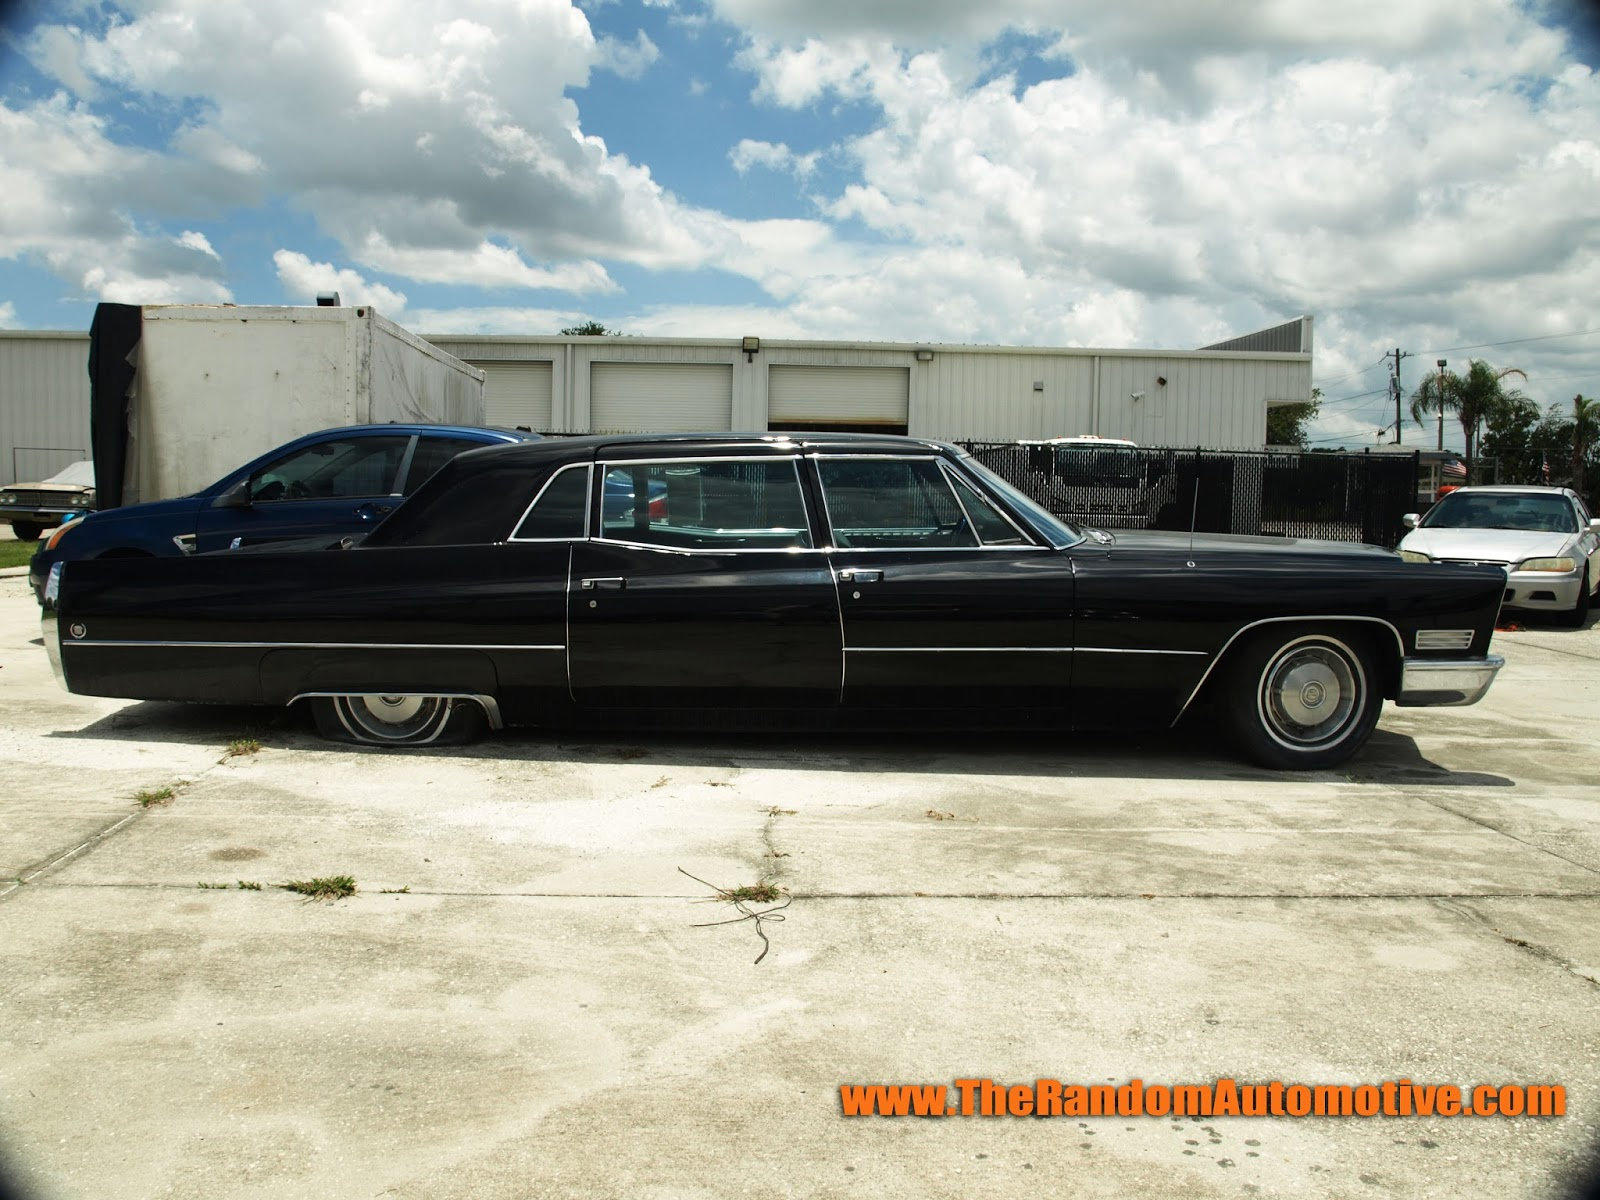 Rotting in Style - 1967 Cadillac Fleetwood Seventy-Five (Limo) ~ The